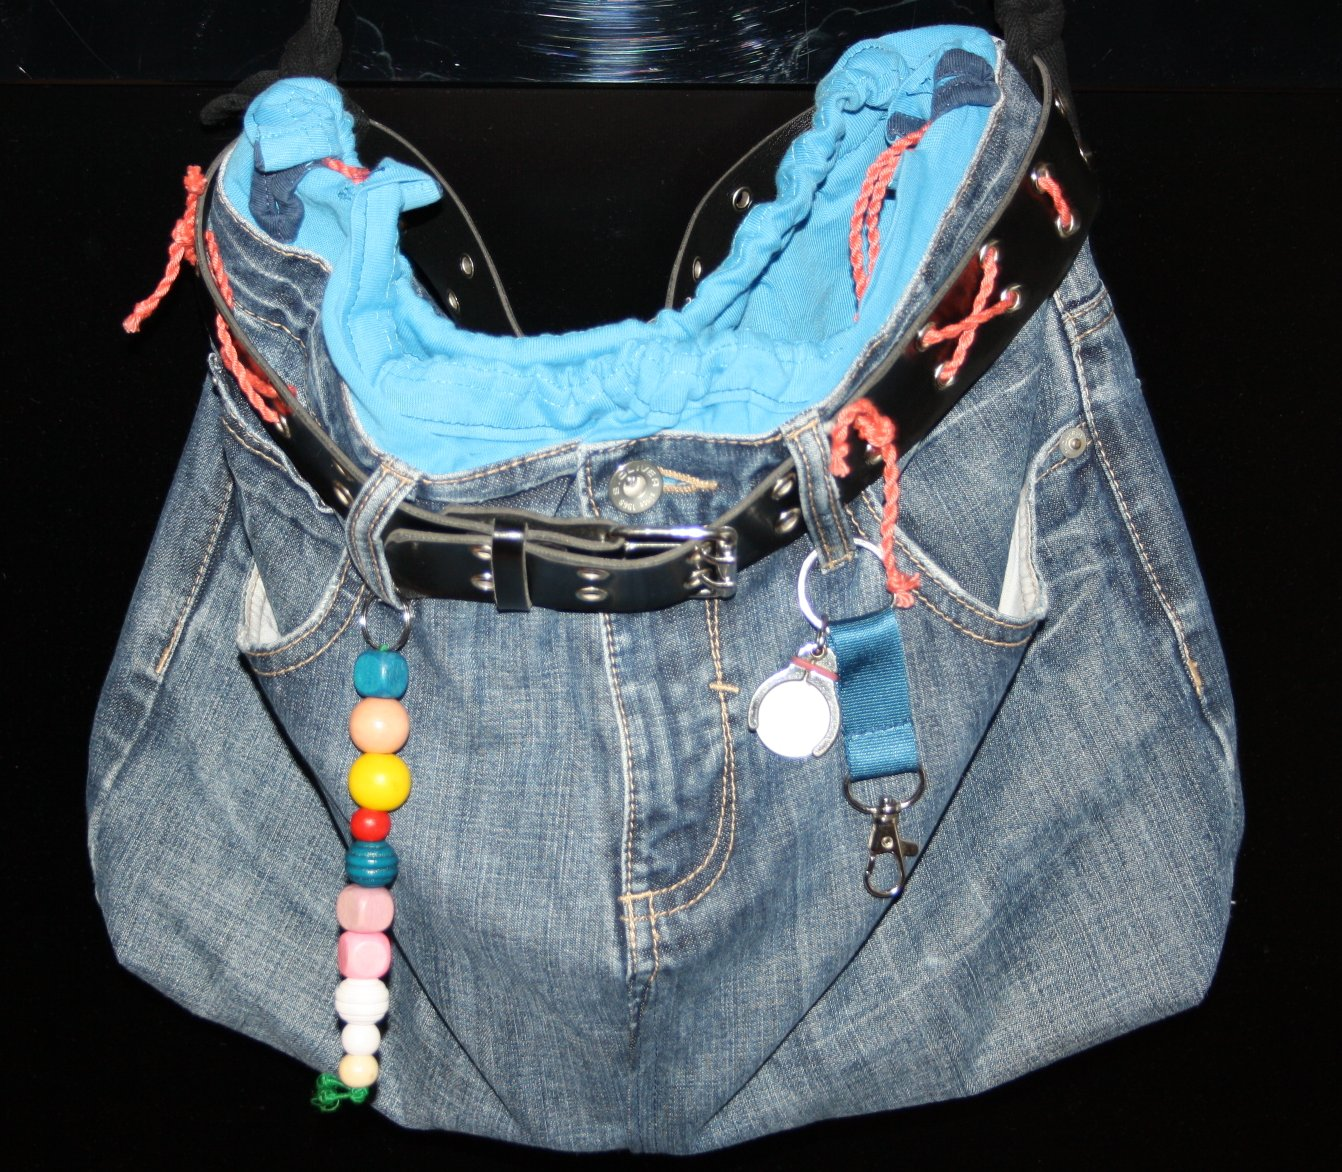 jeanstasche_upcycling1